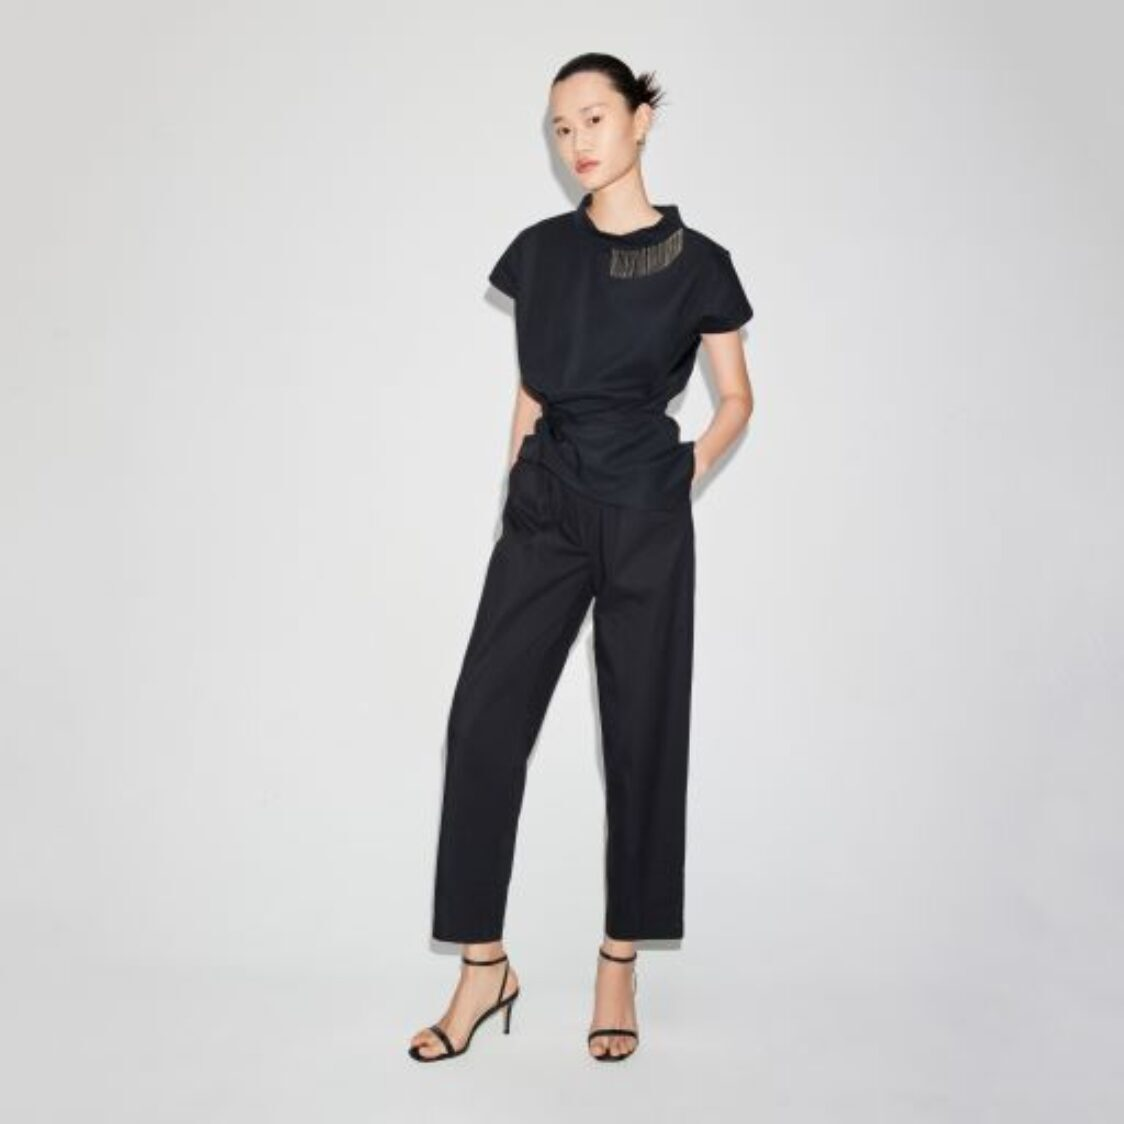 LILY Ruched Waist Top Black